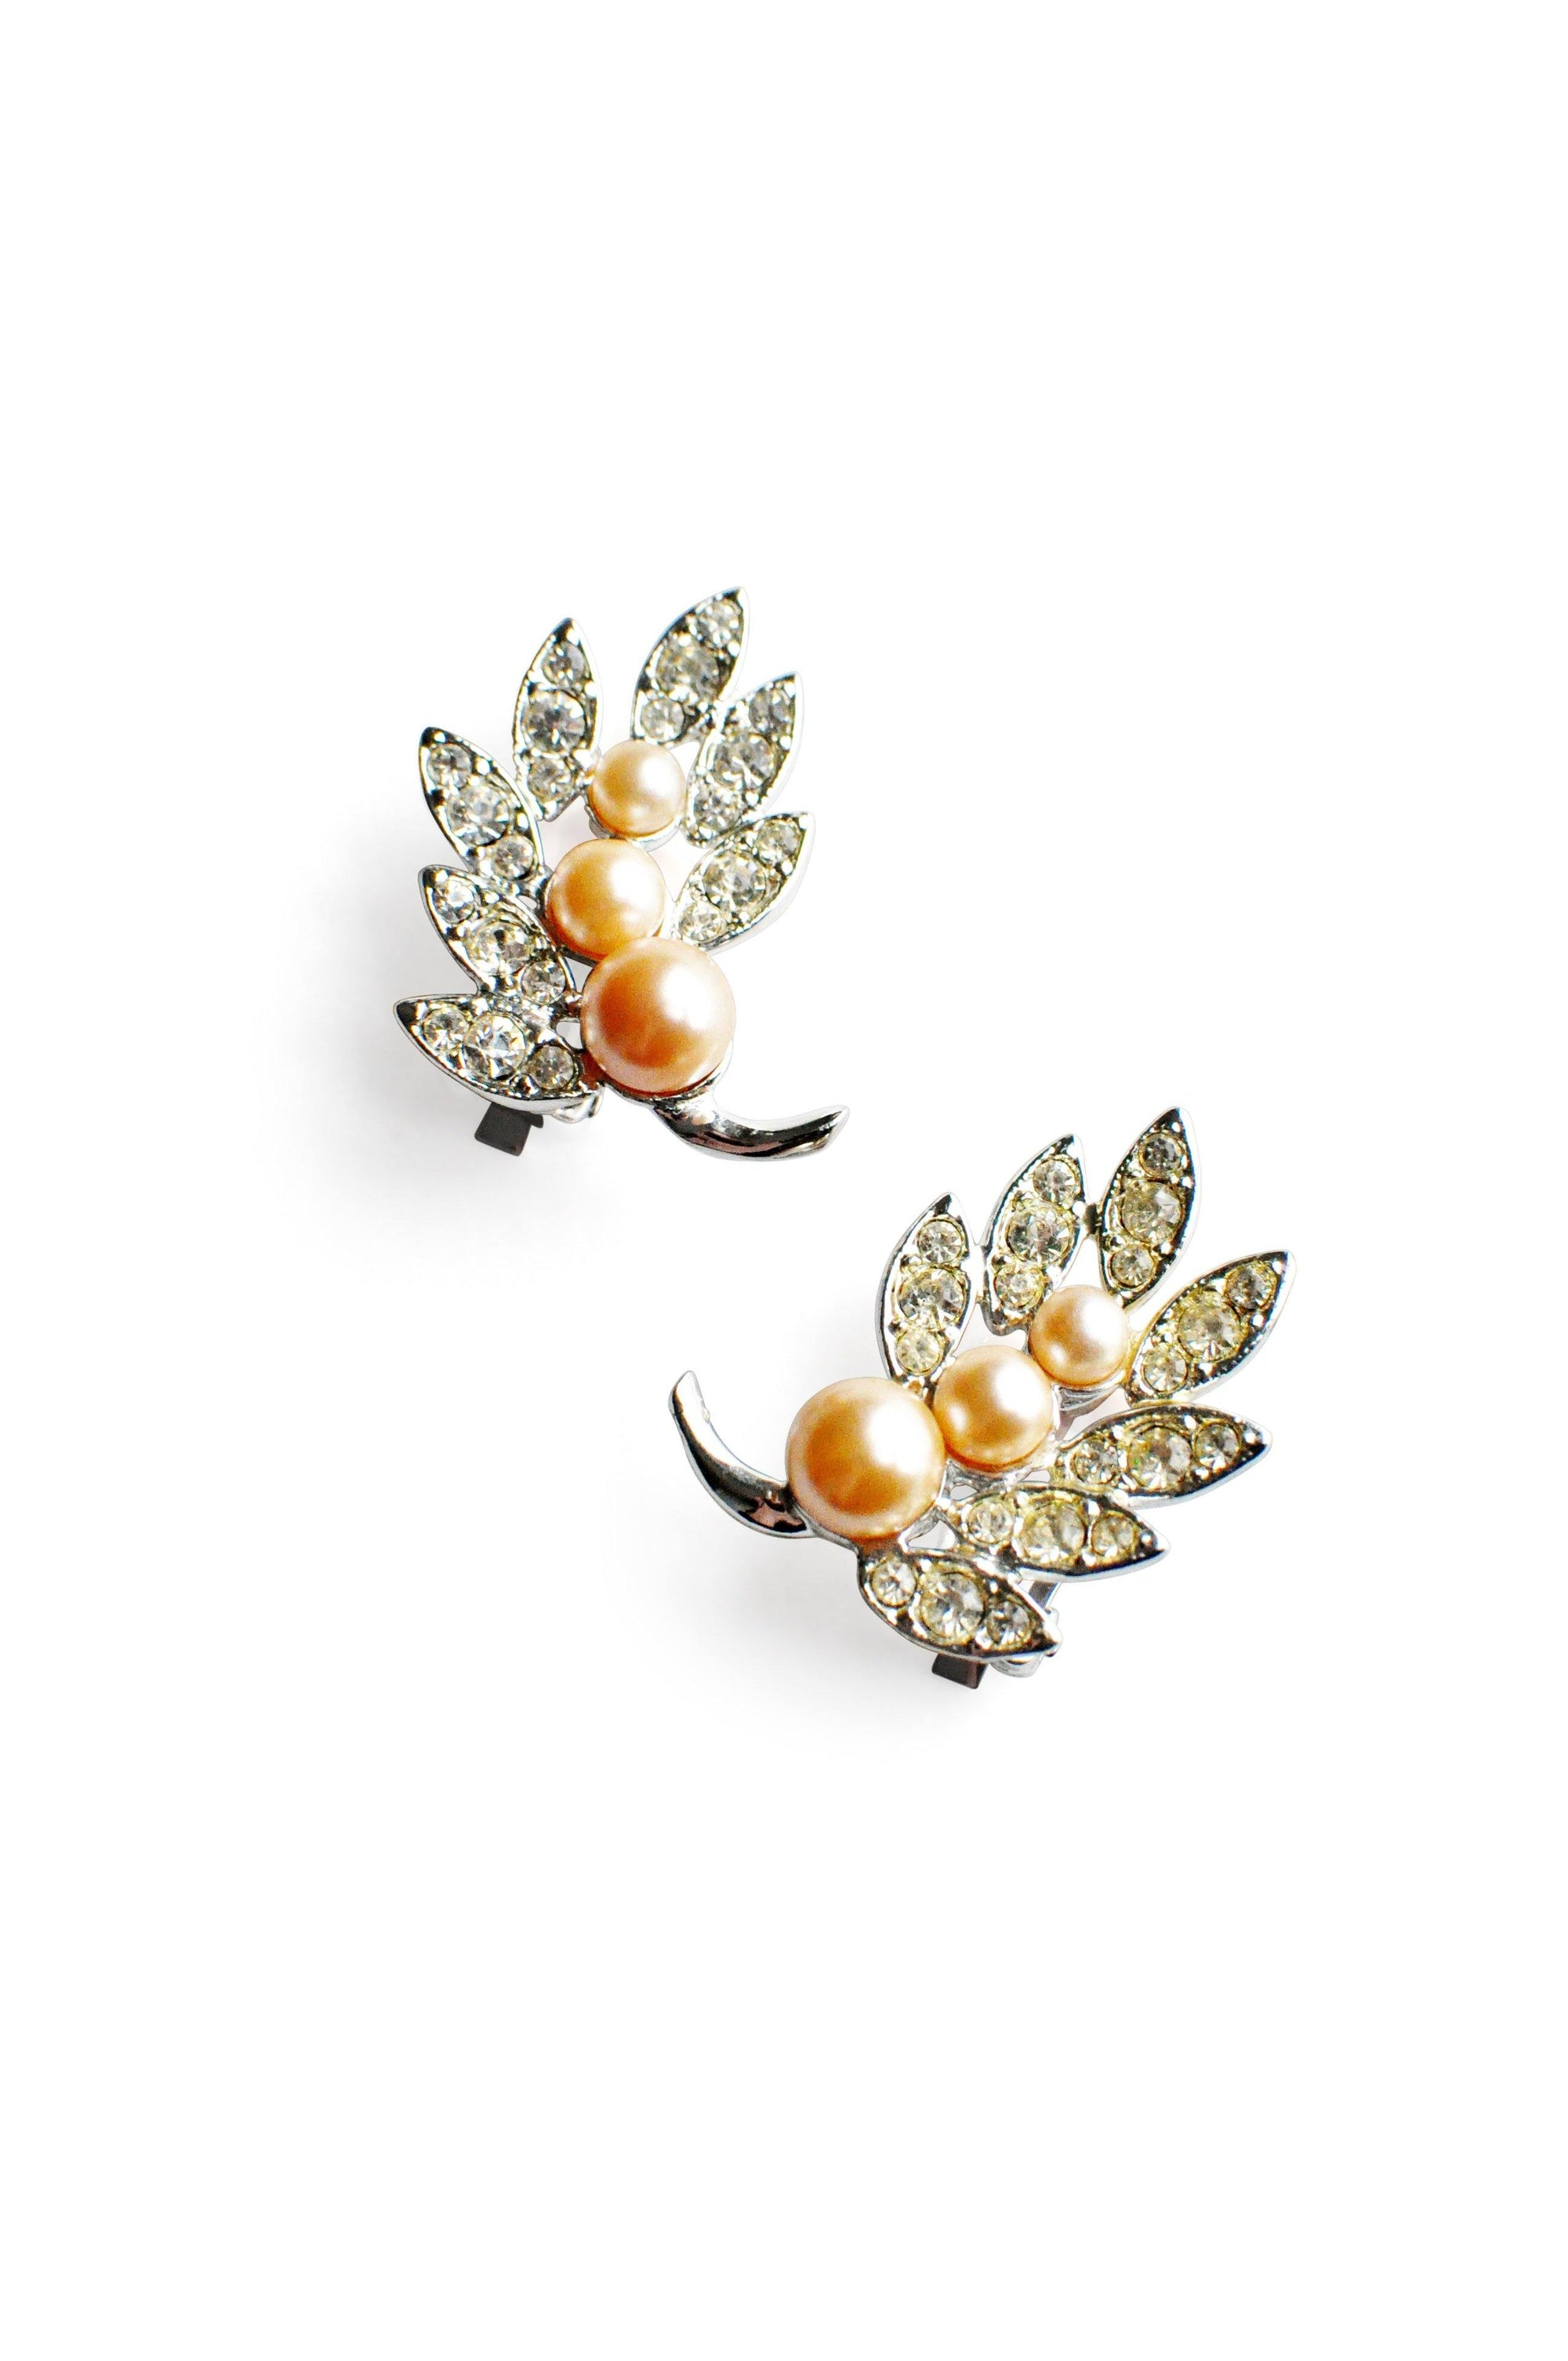 Pearl Crawler Clip-on Earrings from Sweet & Spark